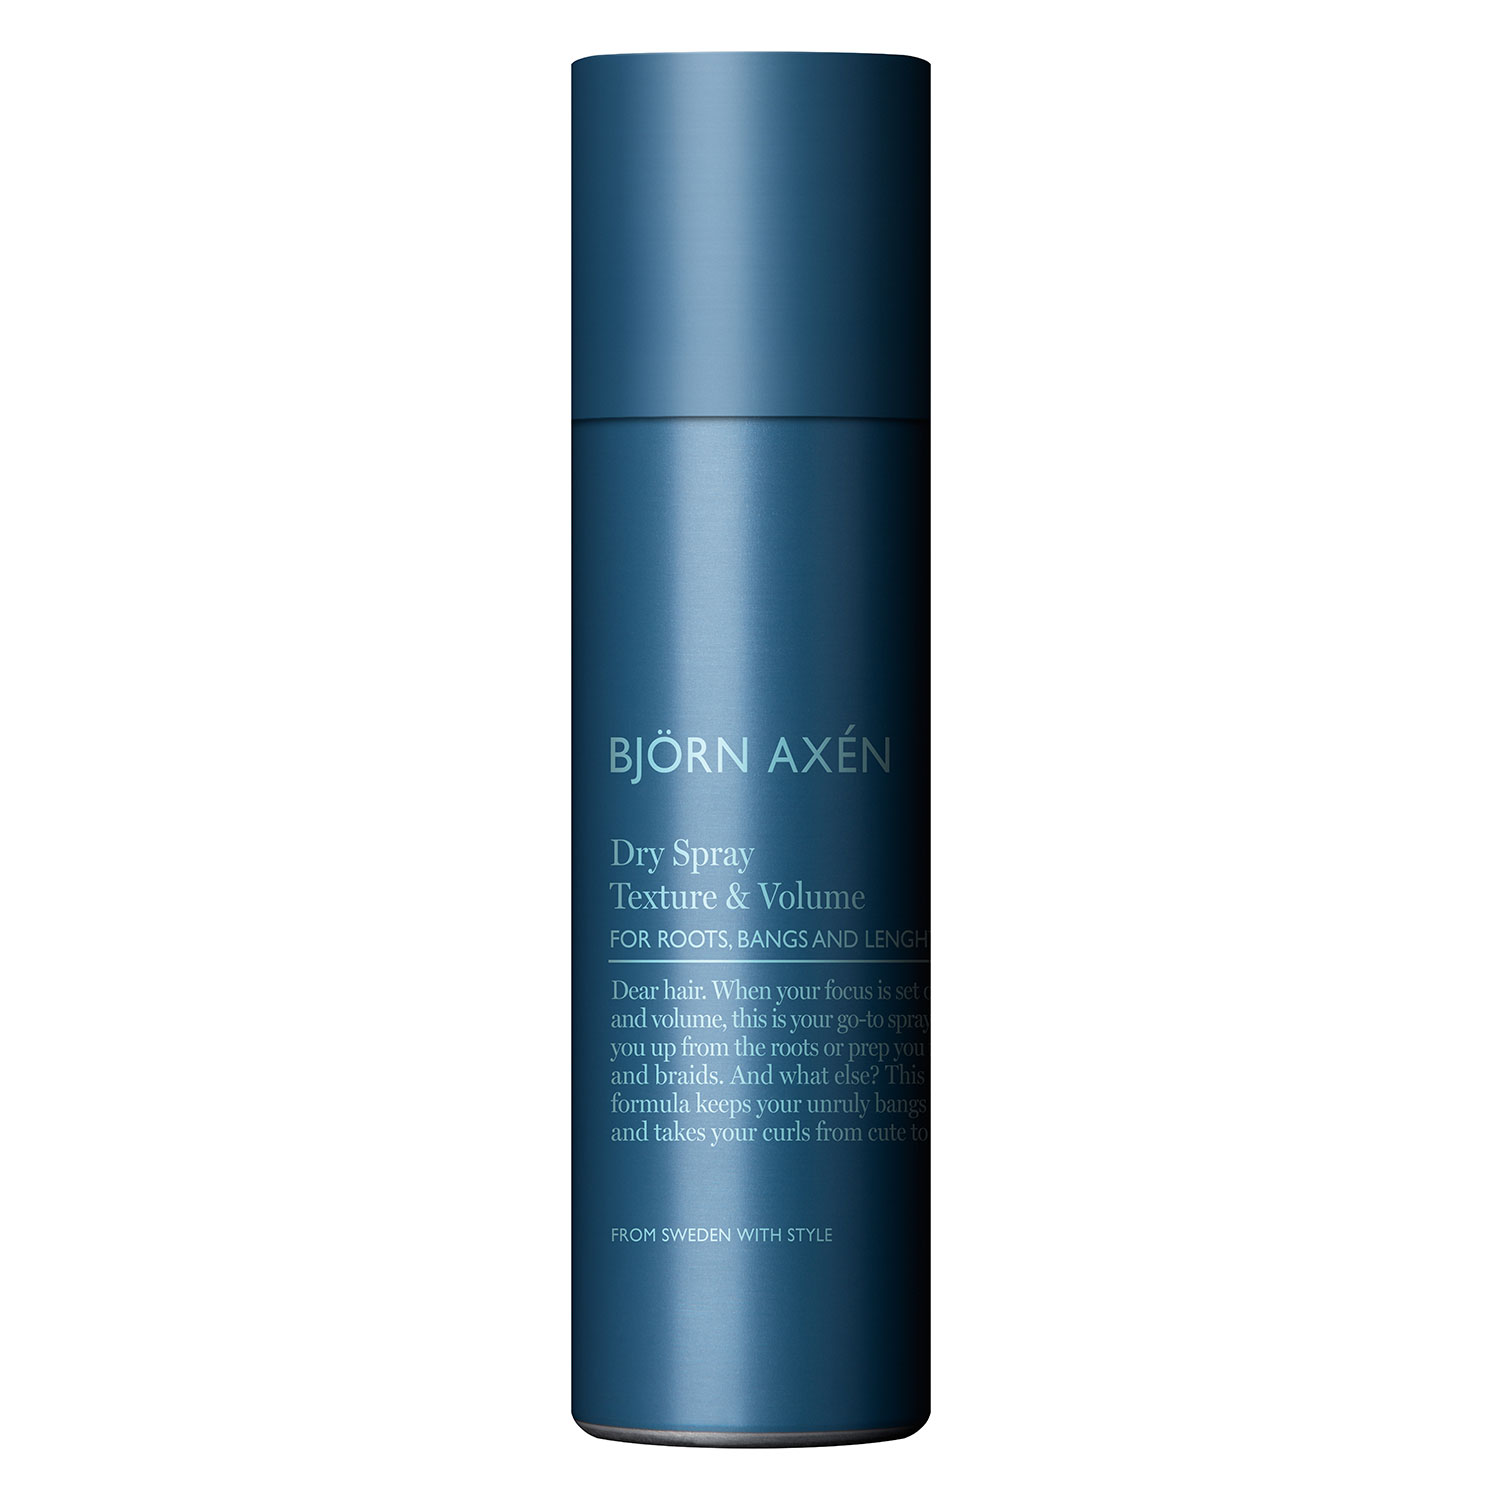 Björn Axén - Texture & Volume Dry Spray